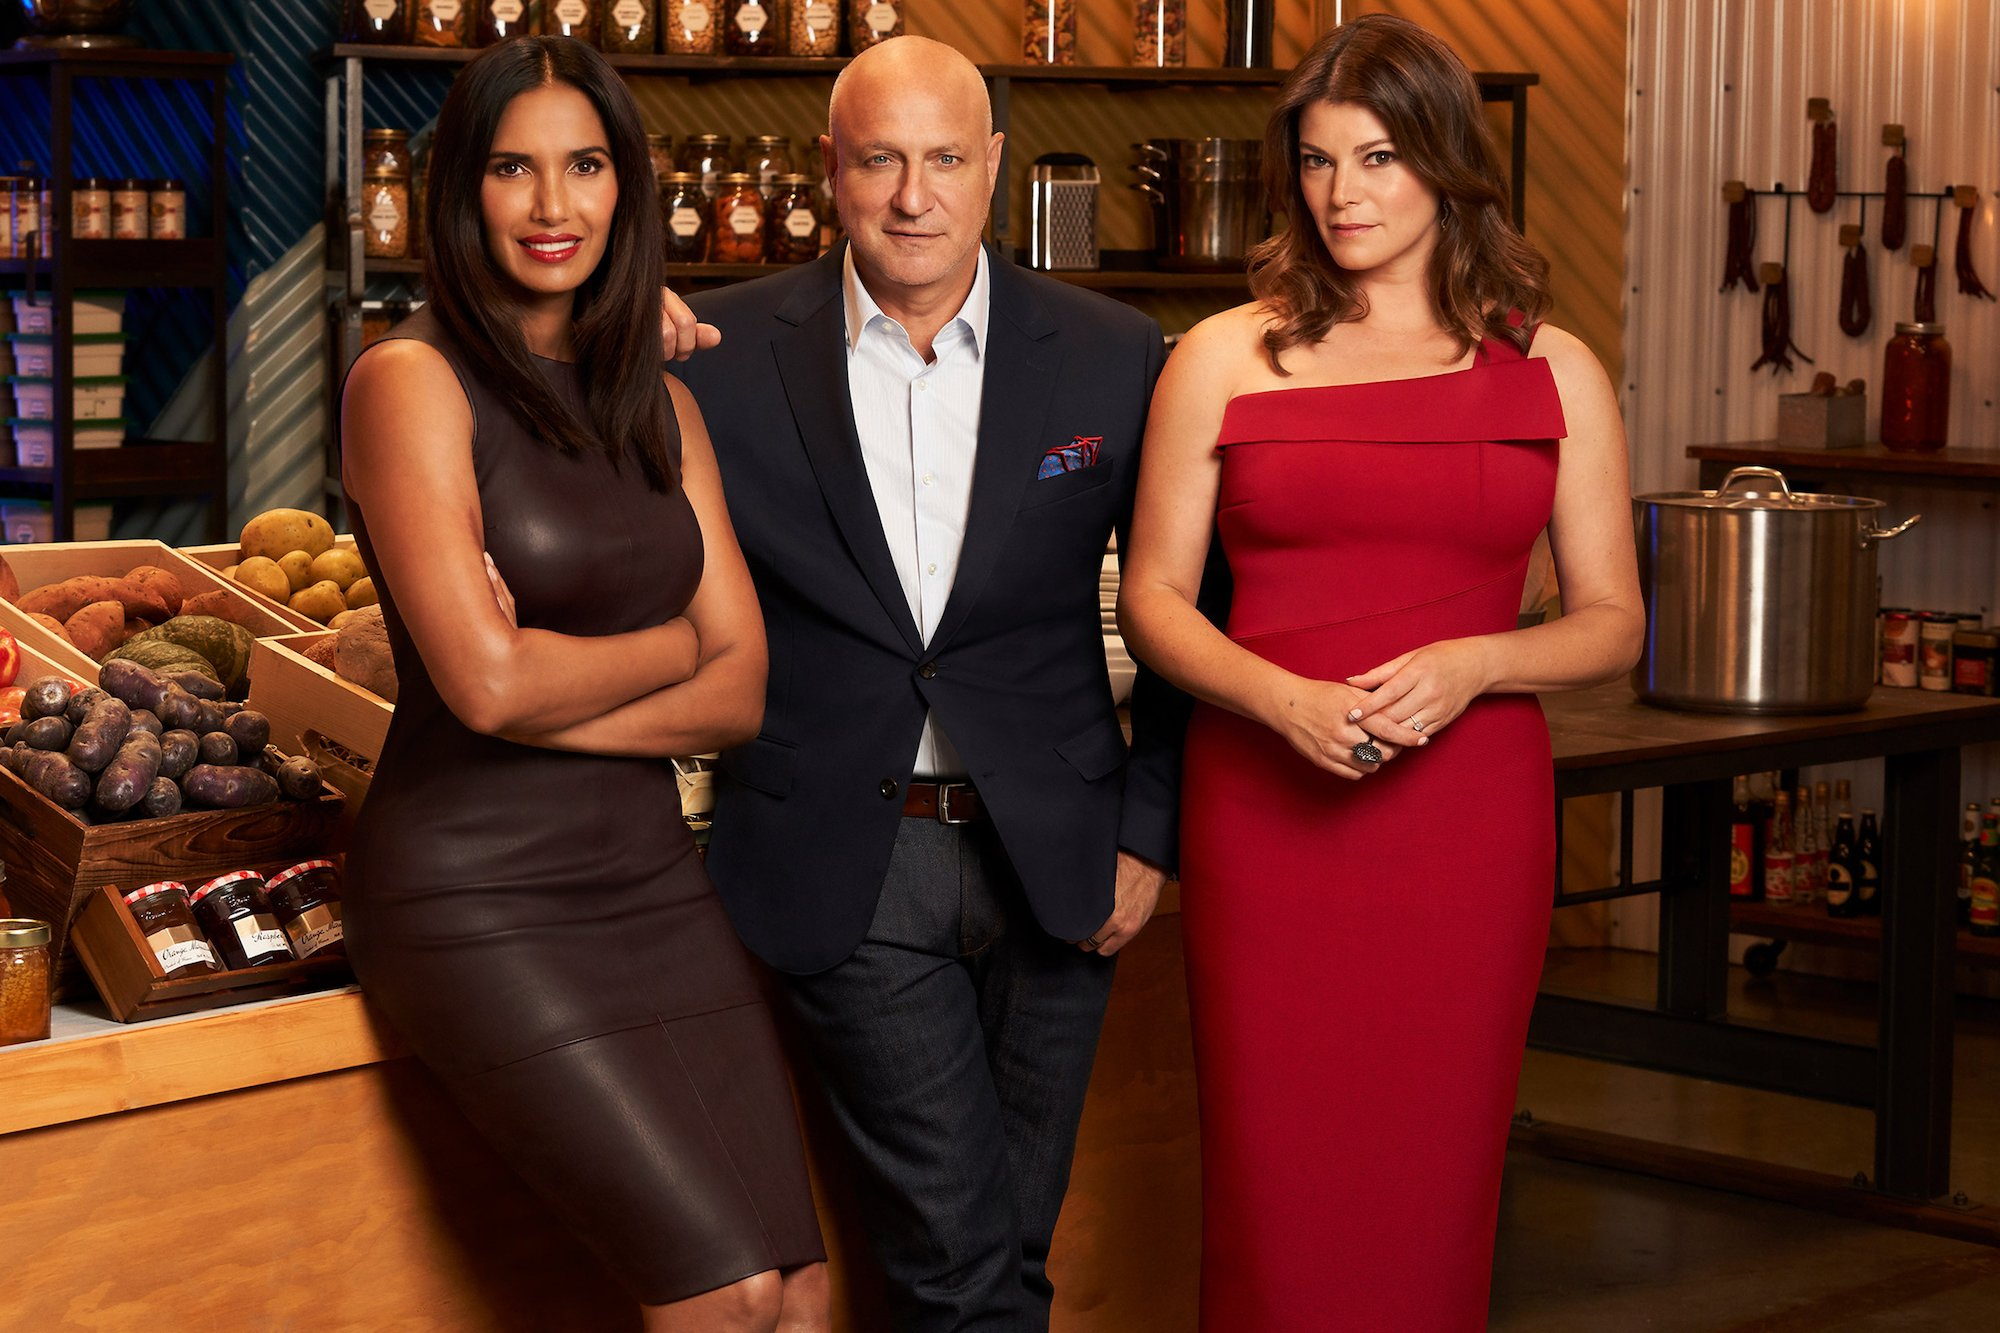 Padma Lakshmi, Tom Colicchio and Gail Simmons pose in front of crates of produce and wine for a Top Chef promo photo.